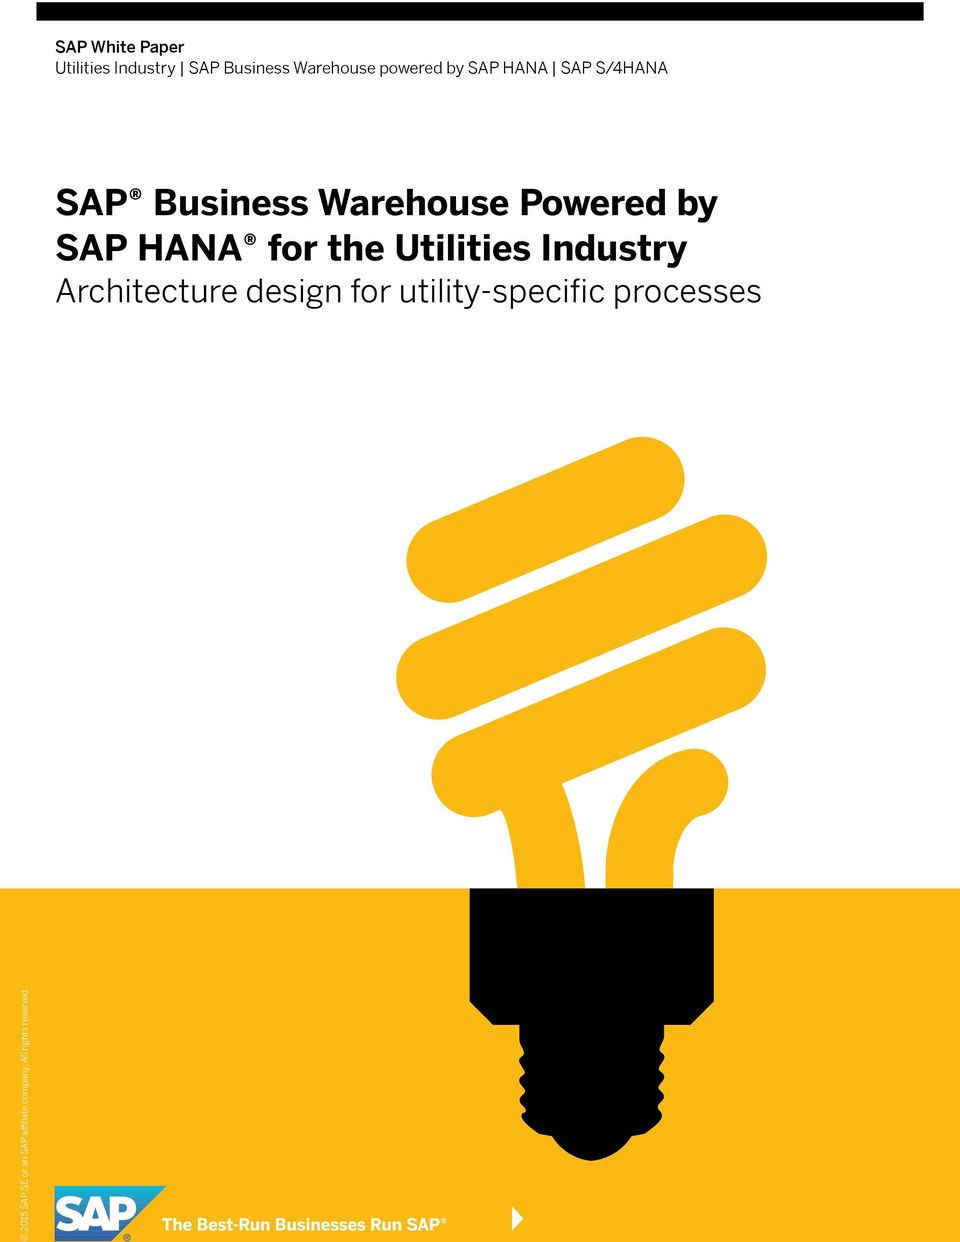 Business Warehouse Powered by SAP HANA for the